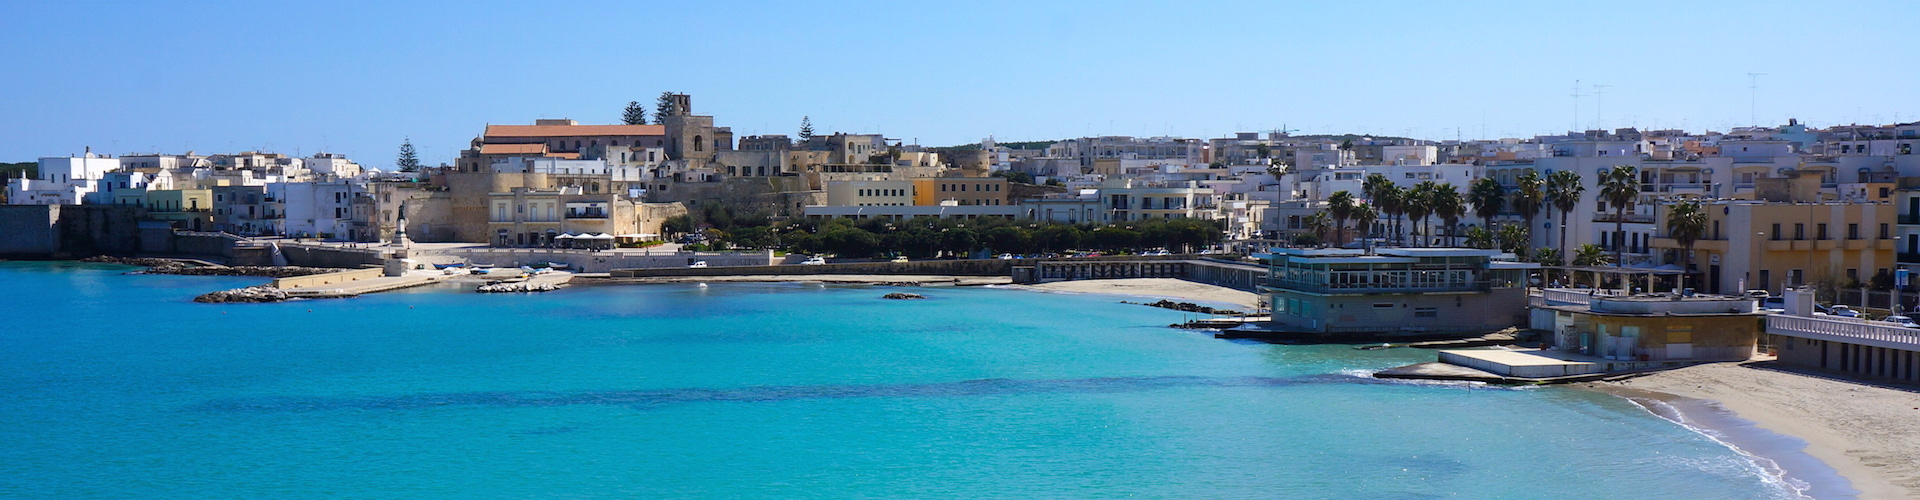 Related Keywords & Suggestions for otranto